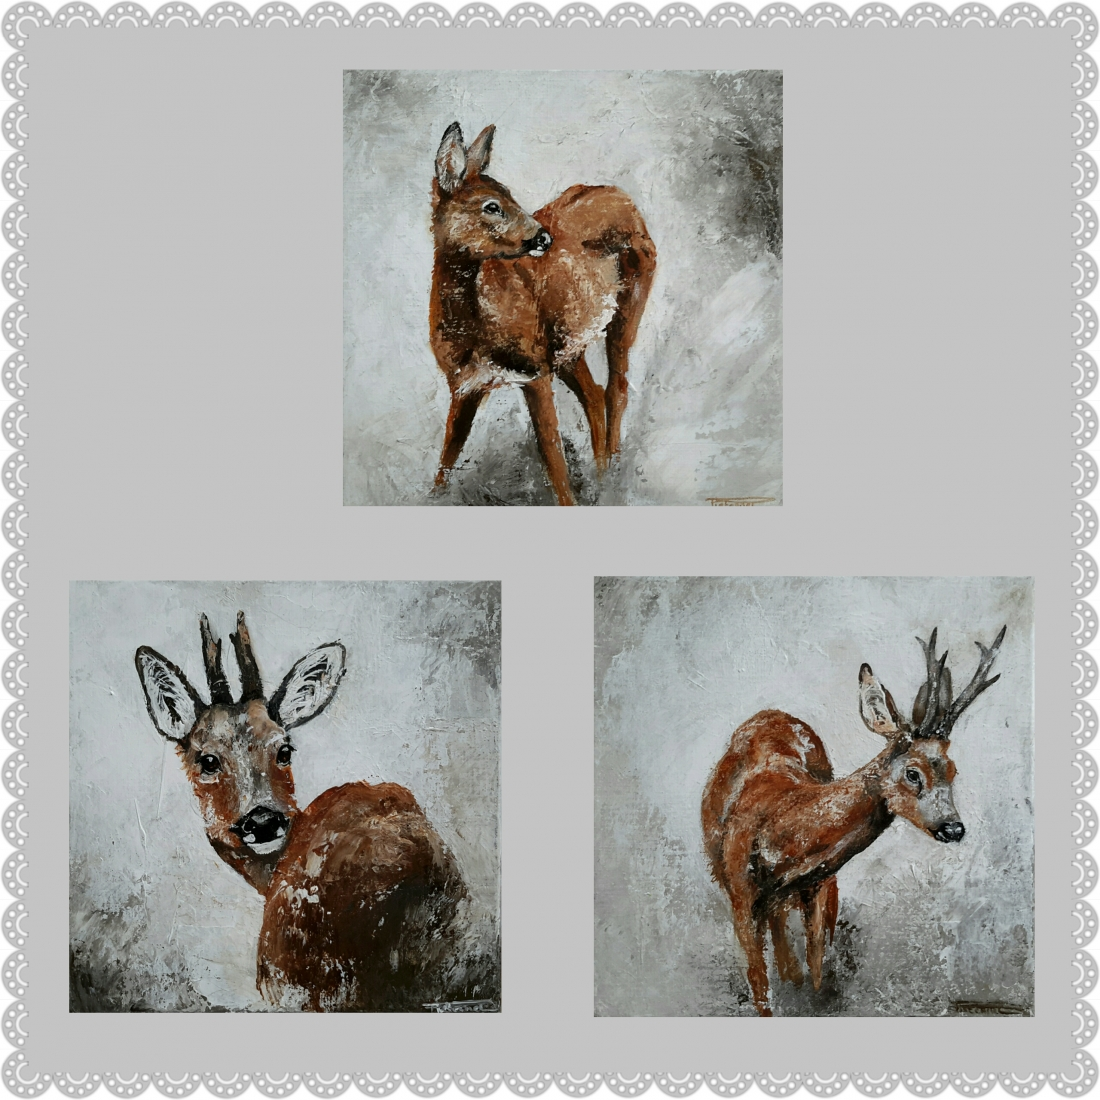 Little Deers 30x30x4 available